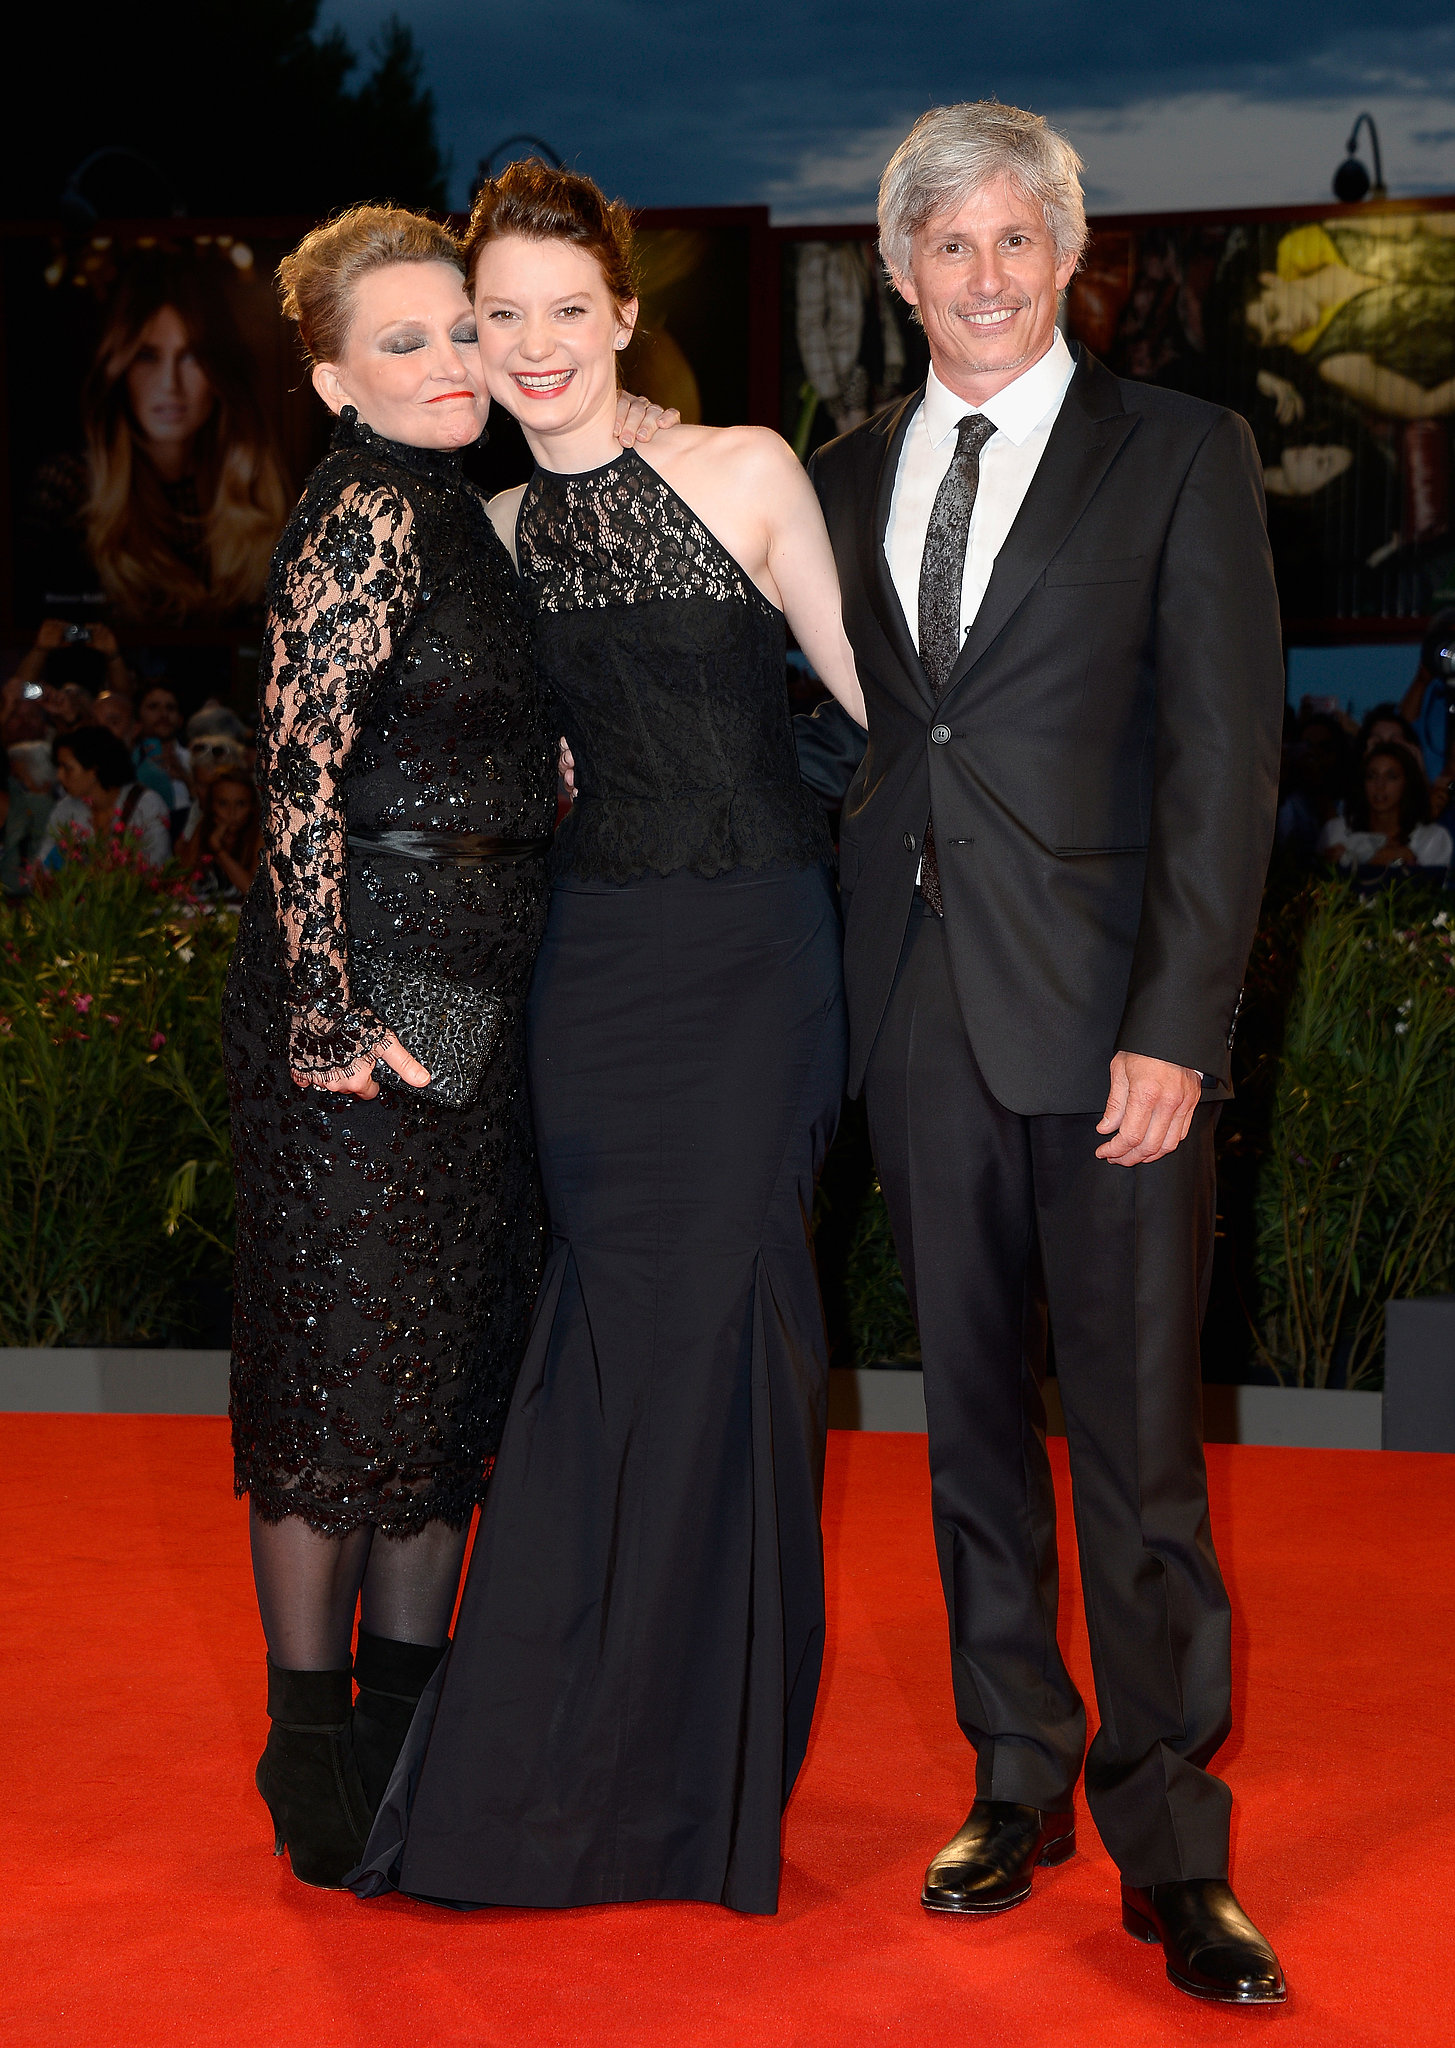 Mia Wasikowska posed with actress Robyn Davidson and director John Curran at the red carpet premiere of Tracks.